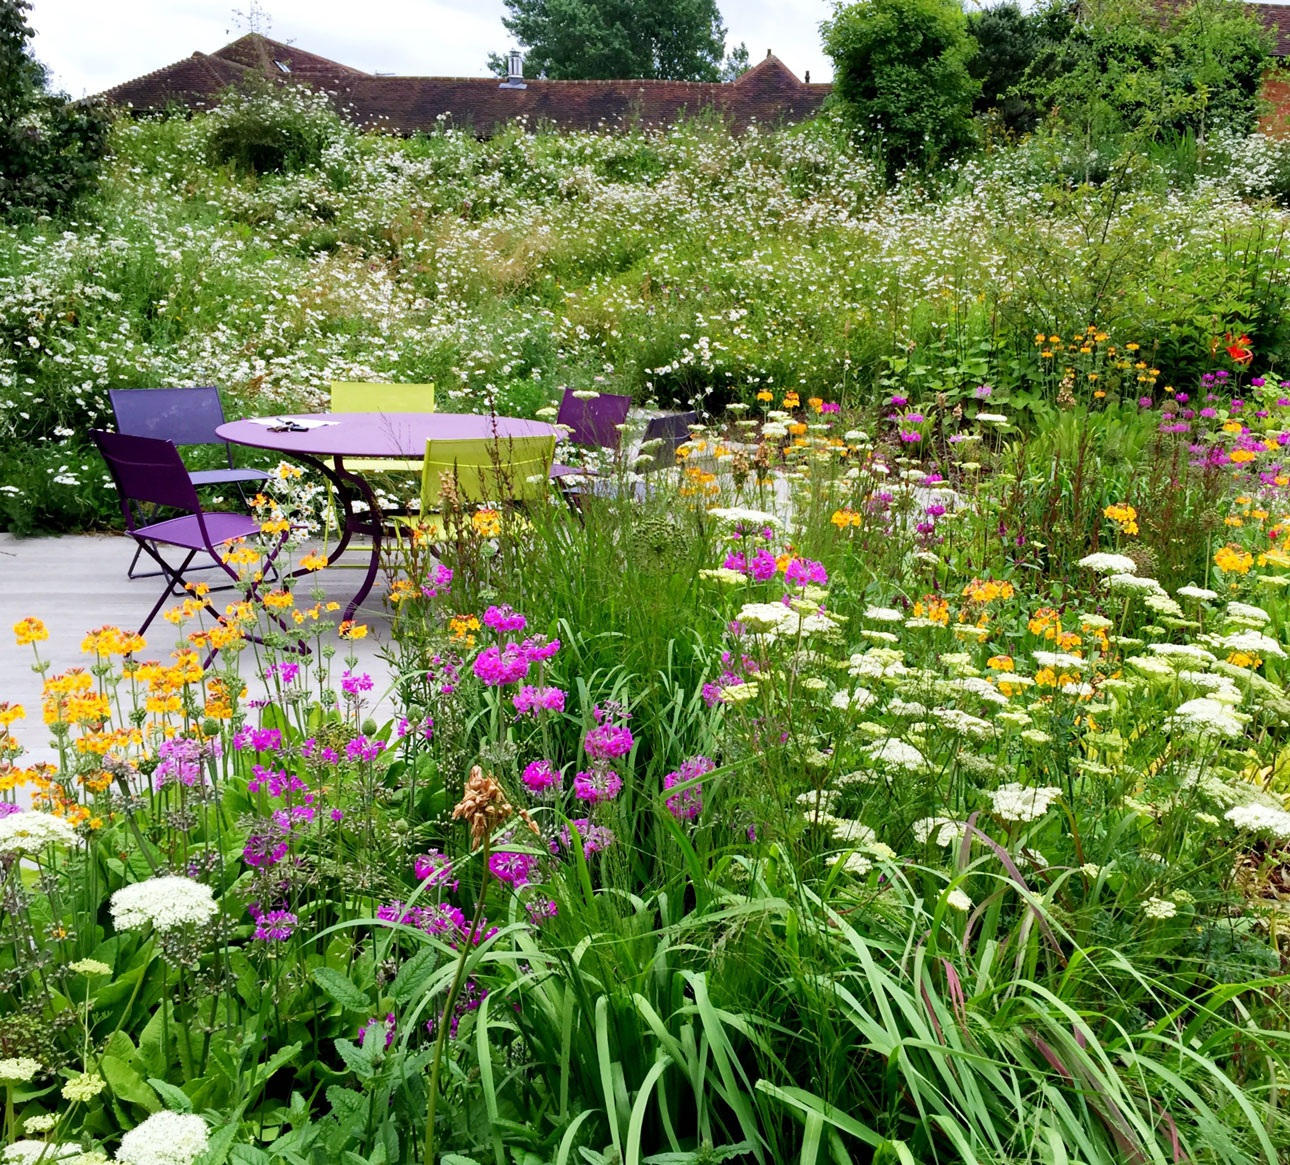 Orange and pink primula flowers in wildflower meadow in Hampshire Garden designed by Ann-Marie Powell